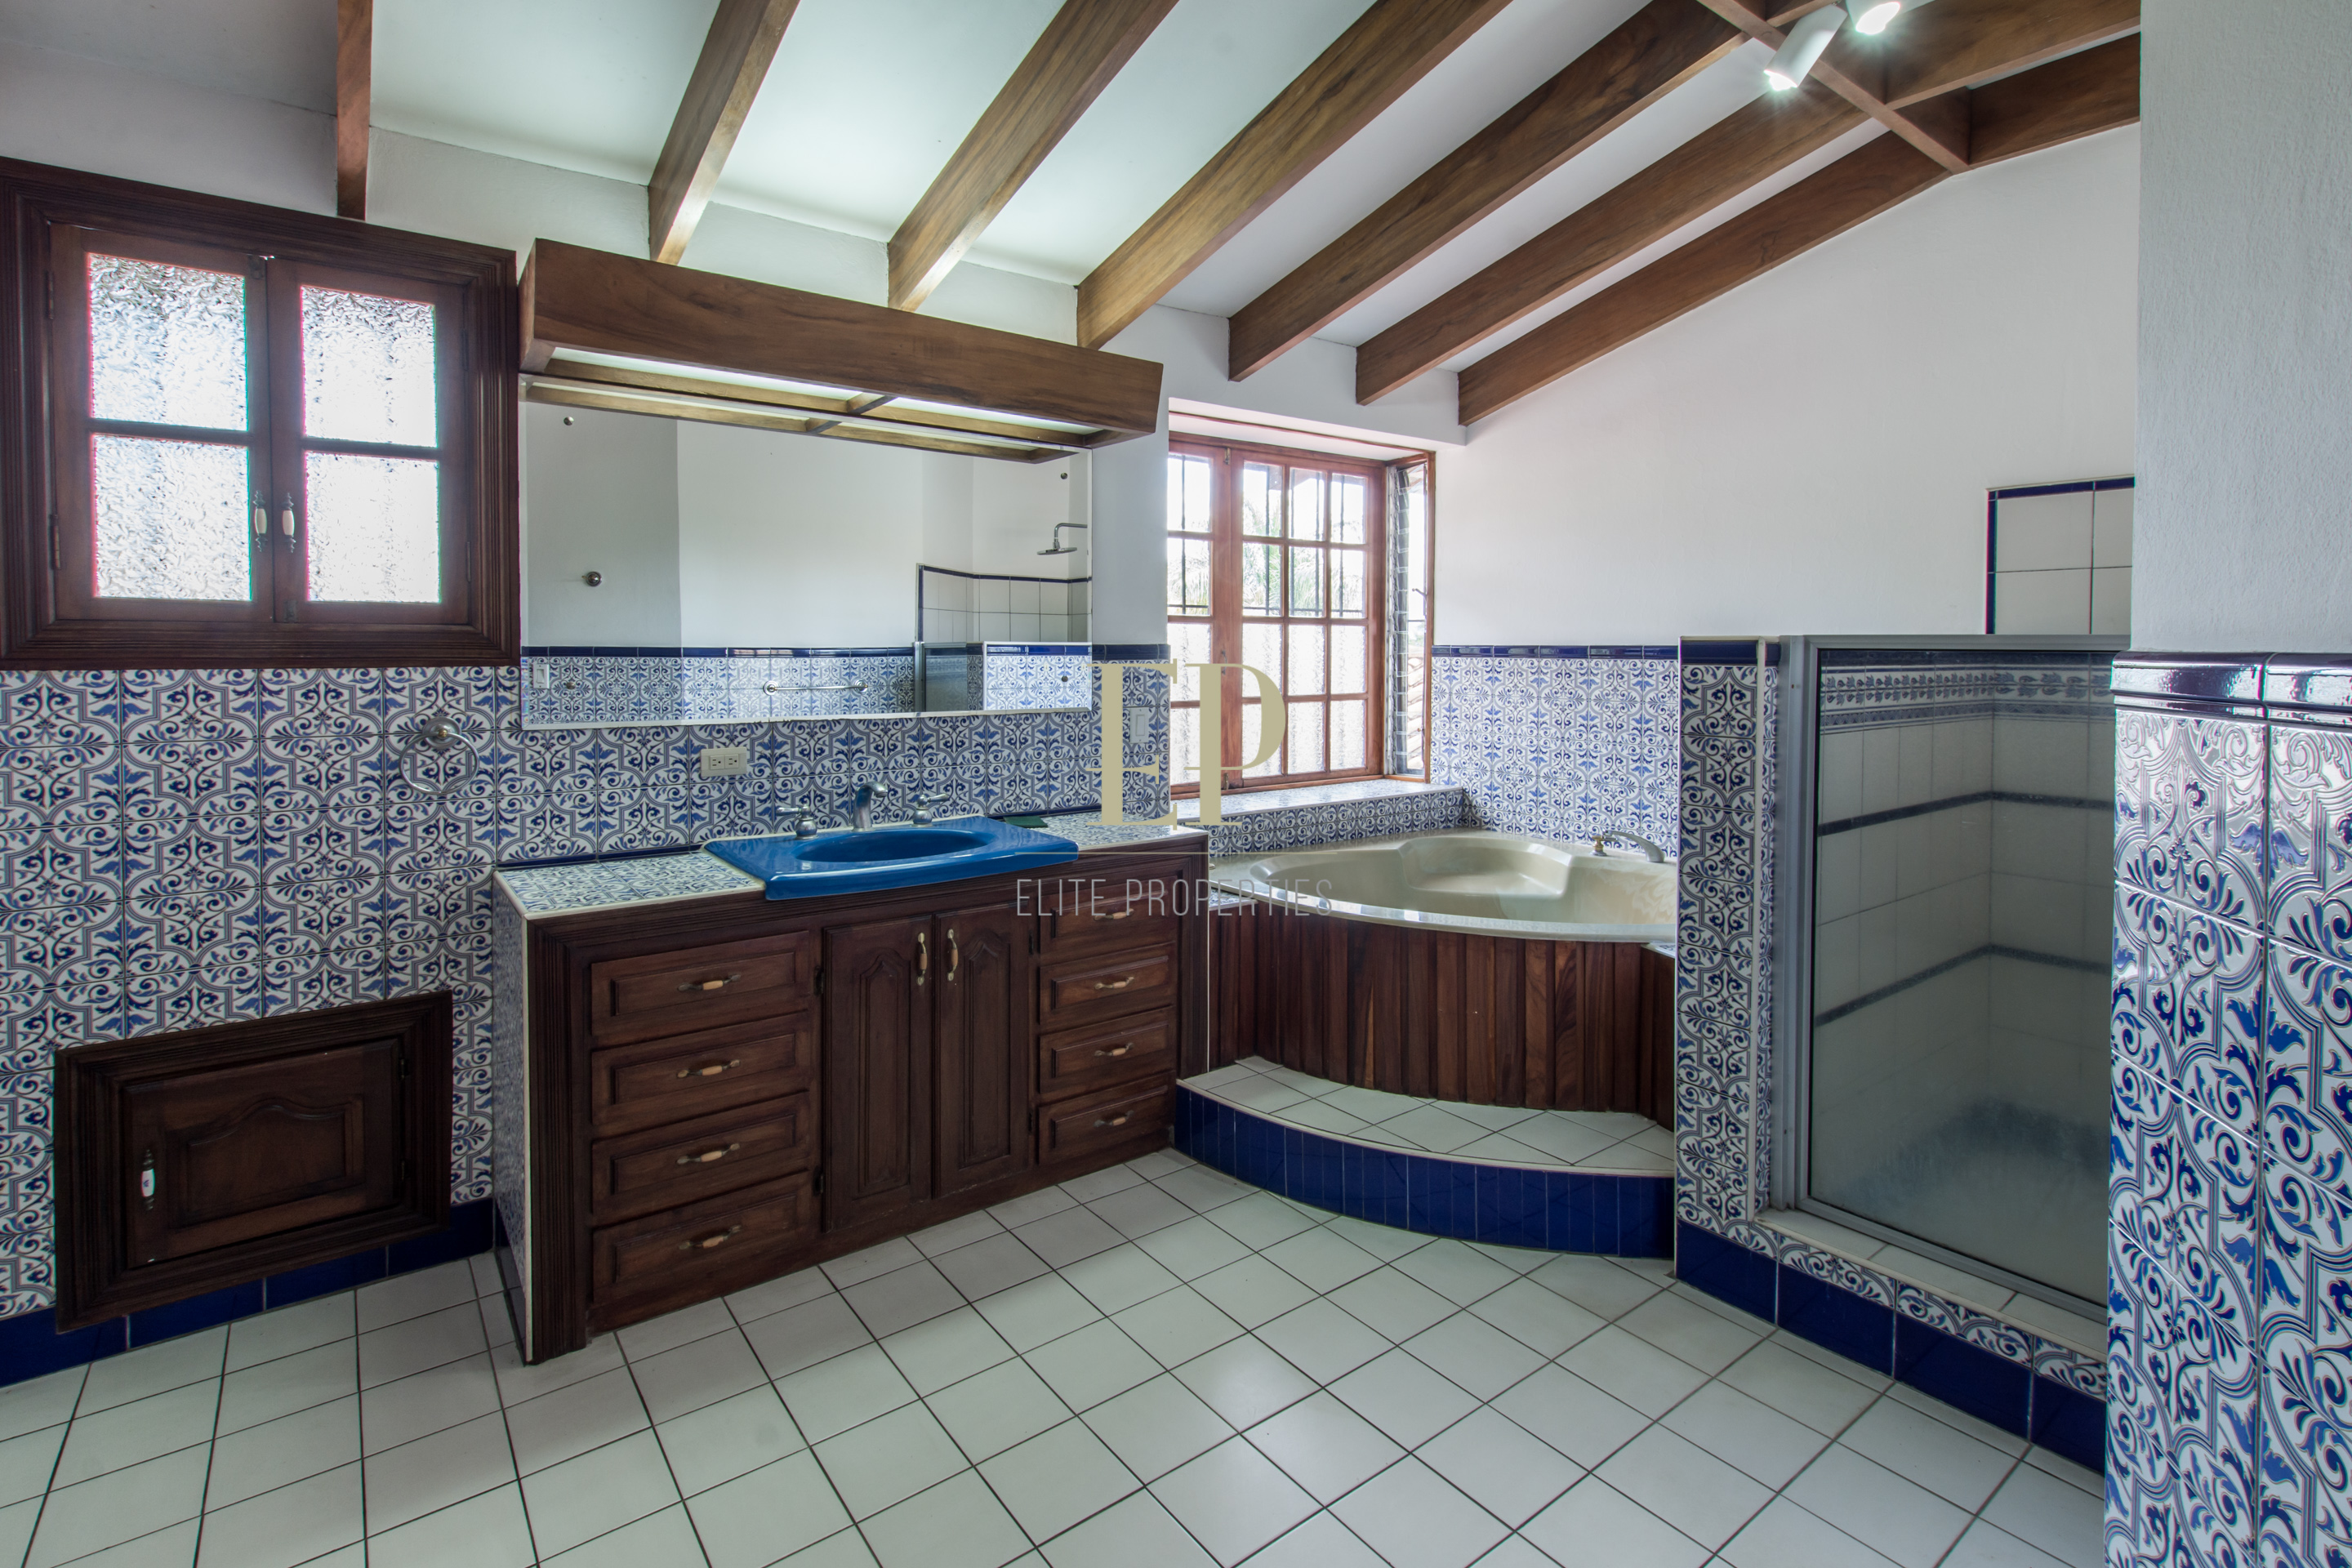 Home in residential, excellent location